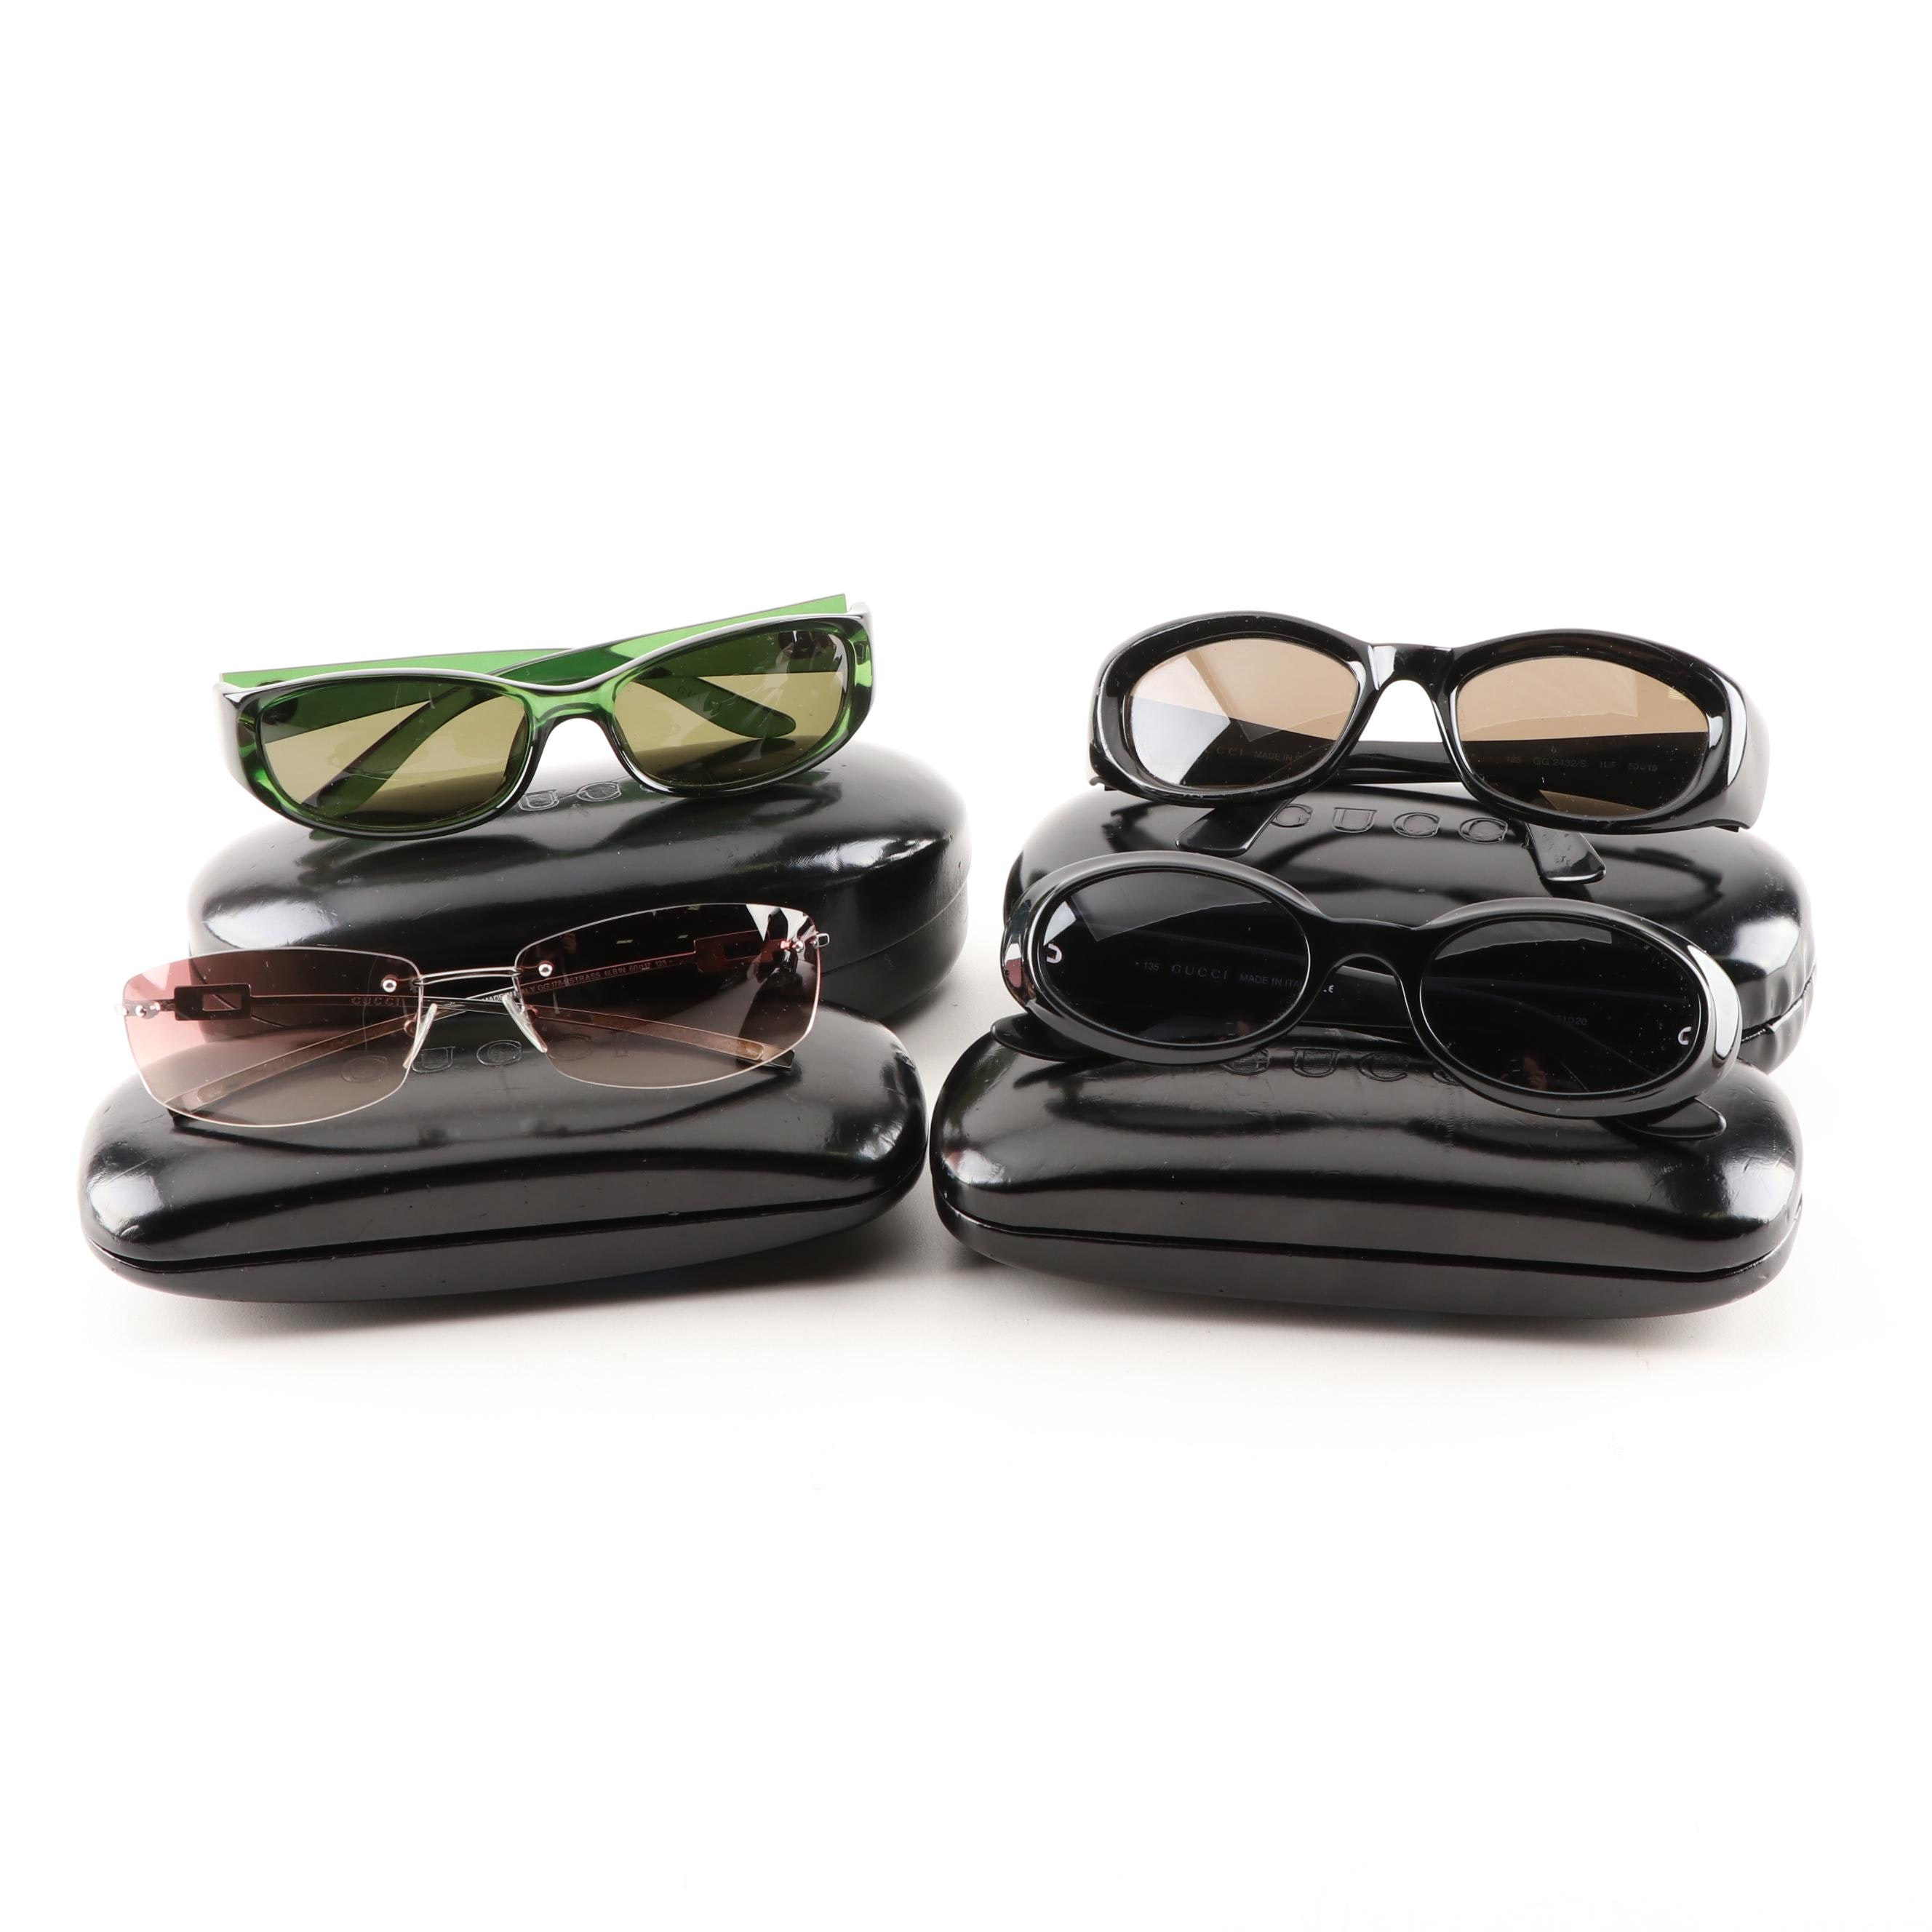 Four Pairs of Women's Gucci Sunglasses with Cases